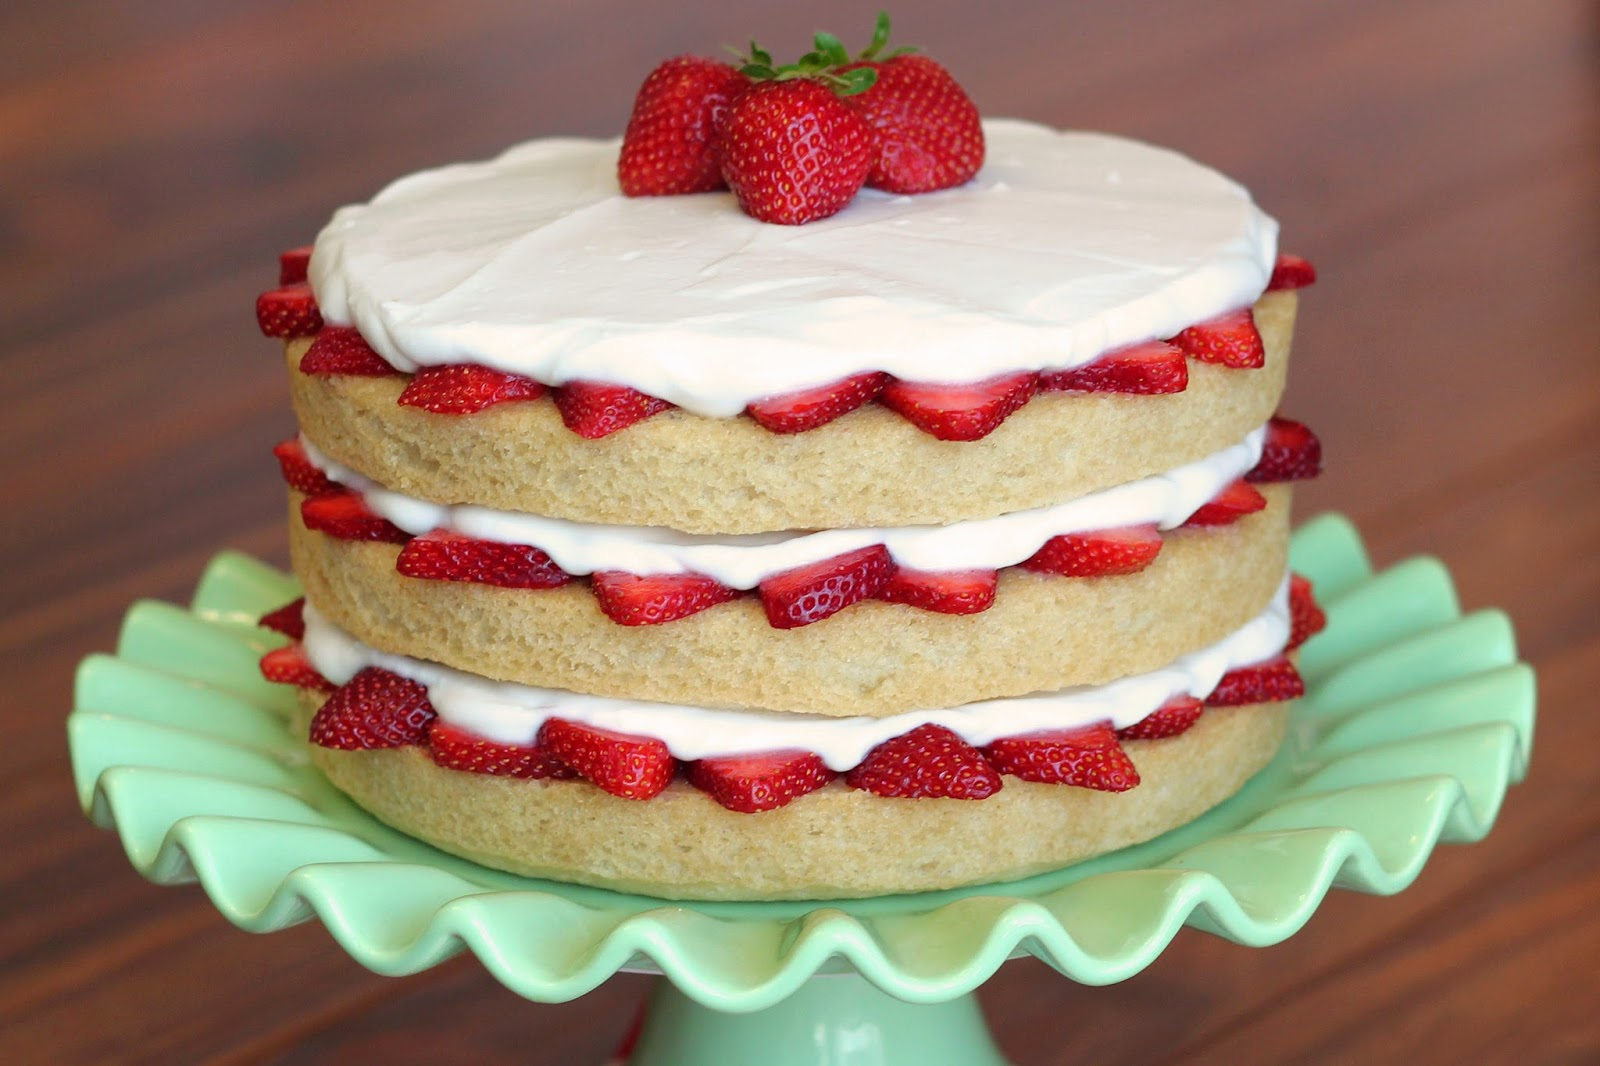 Whole Foods Strawberry Cream Cake